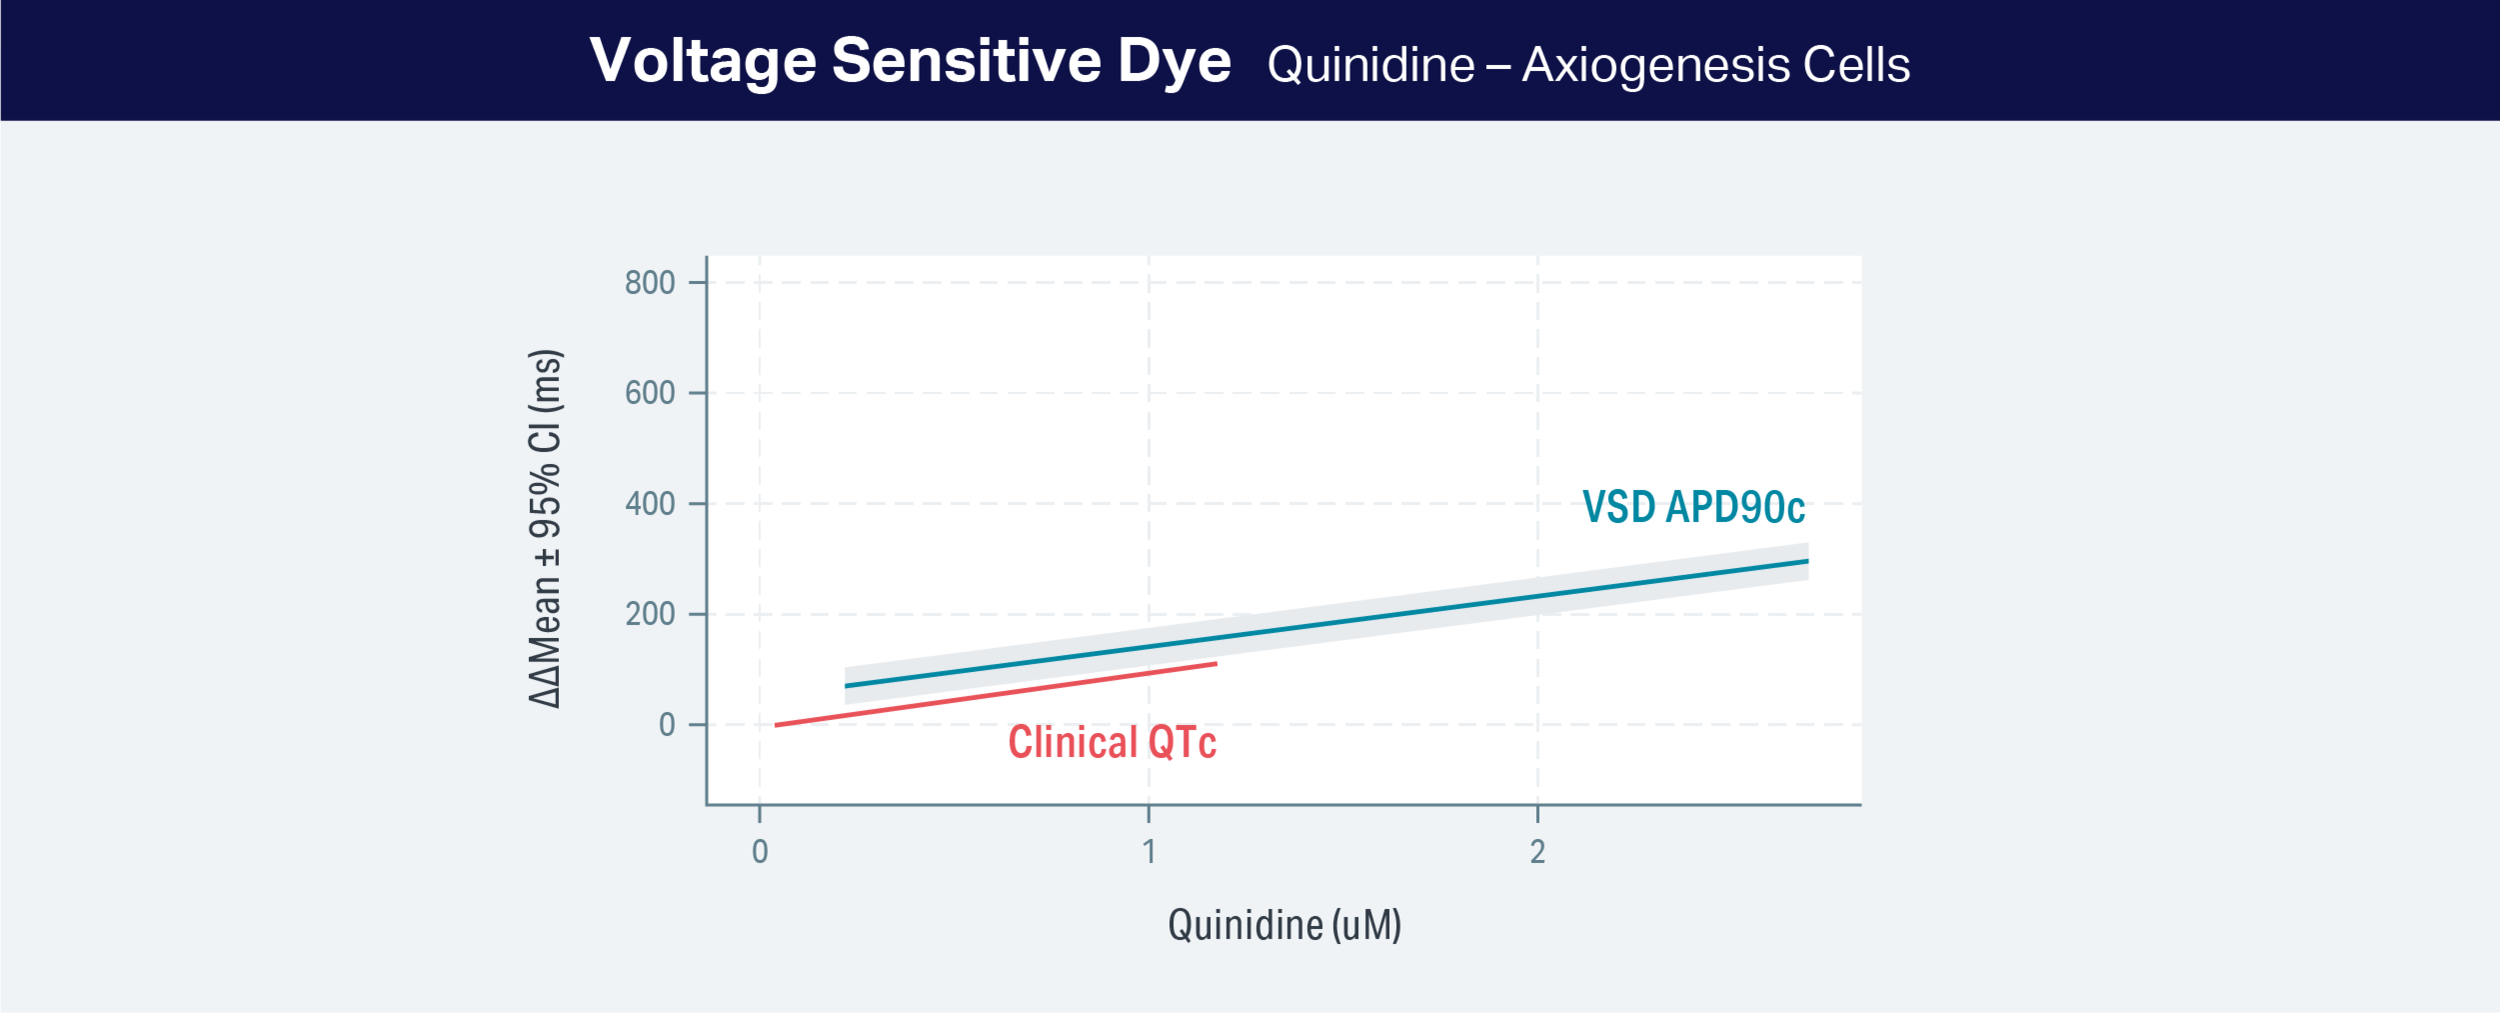 Graph showing voltage sensitive dye data from the CellOPTIQ platform